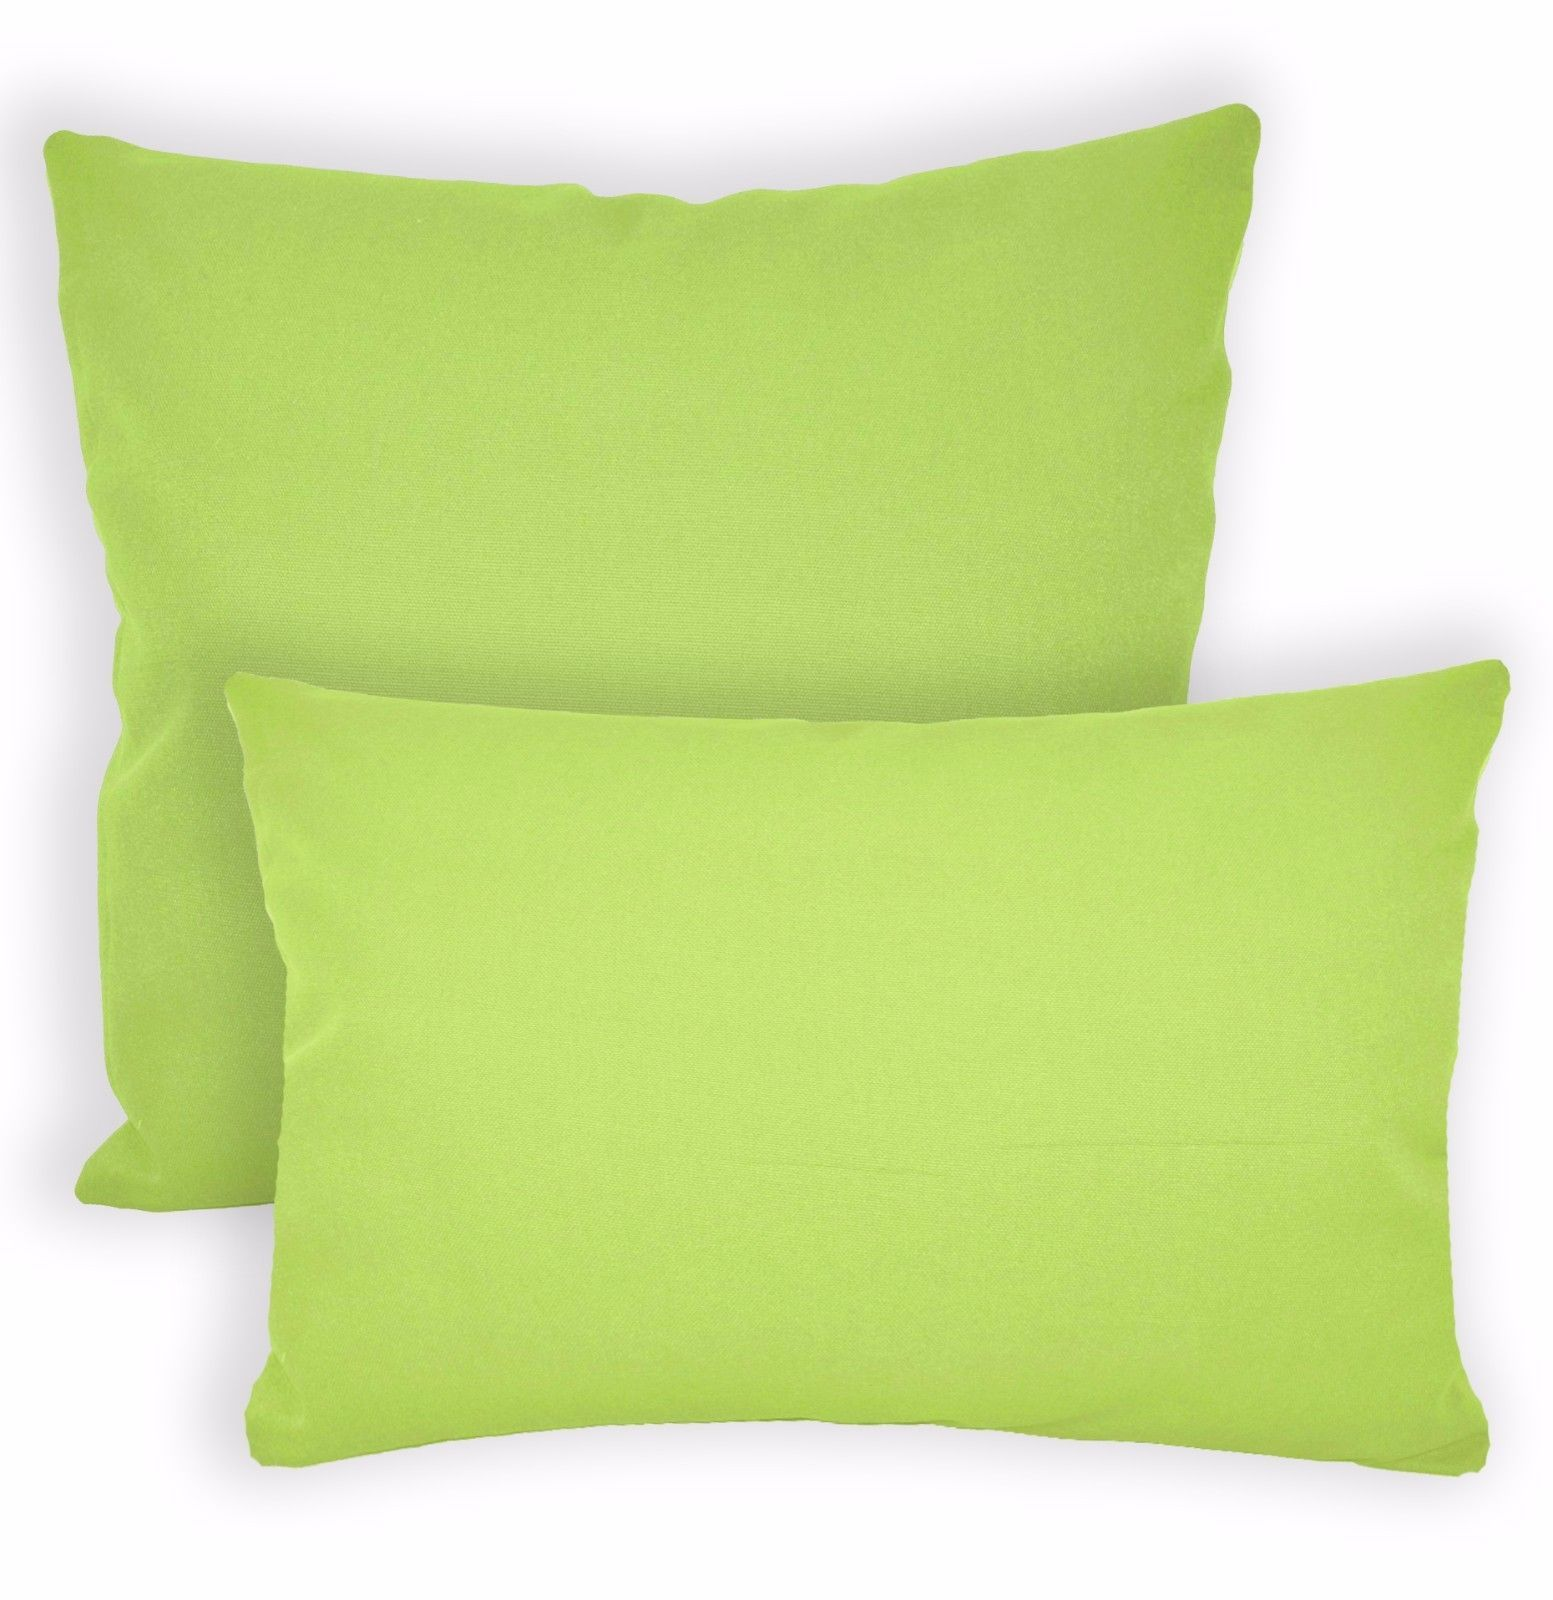 Aw38A Fluorescent Lime High Quality 12Oz Cotton Cushion Coverpillow Case